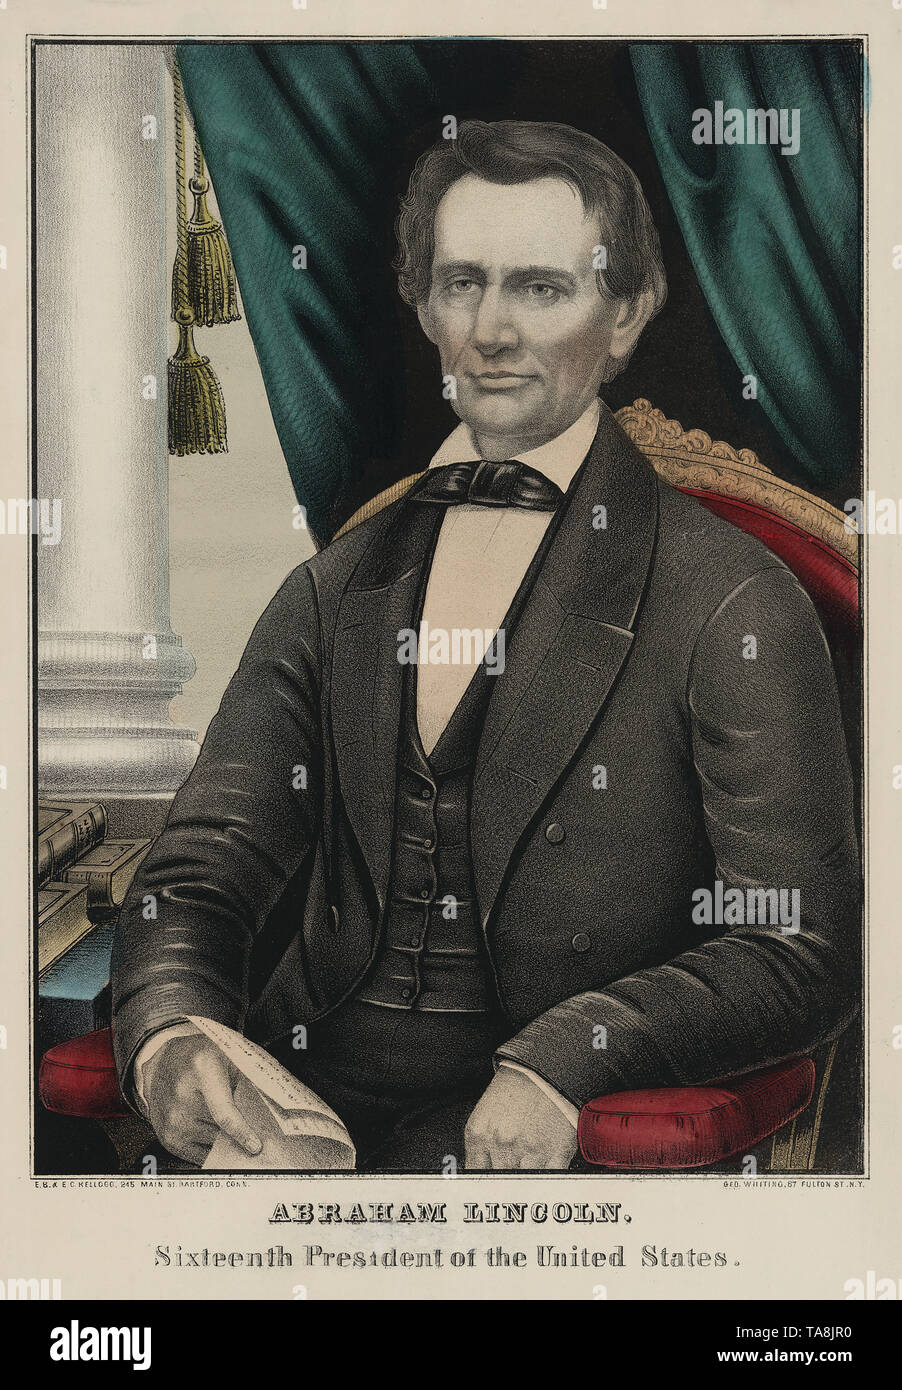 Abraham Lincoln, Sixteenth President of the United States, Lithograph by E.B. & E.C. Kellogg, Published by George Whiting, New York, 1860 - Stock Image